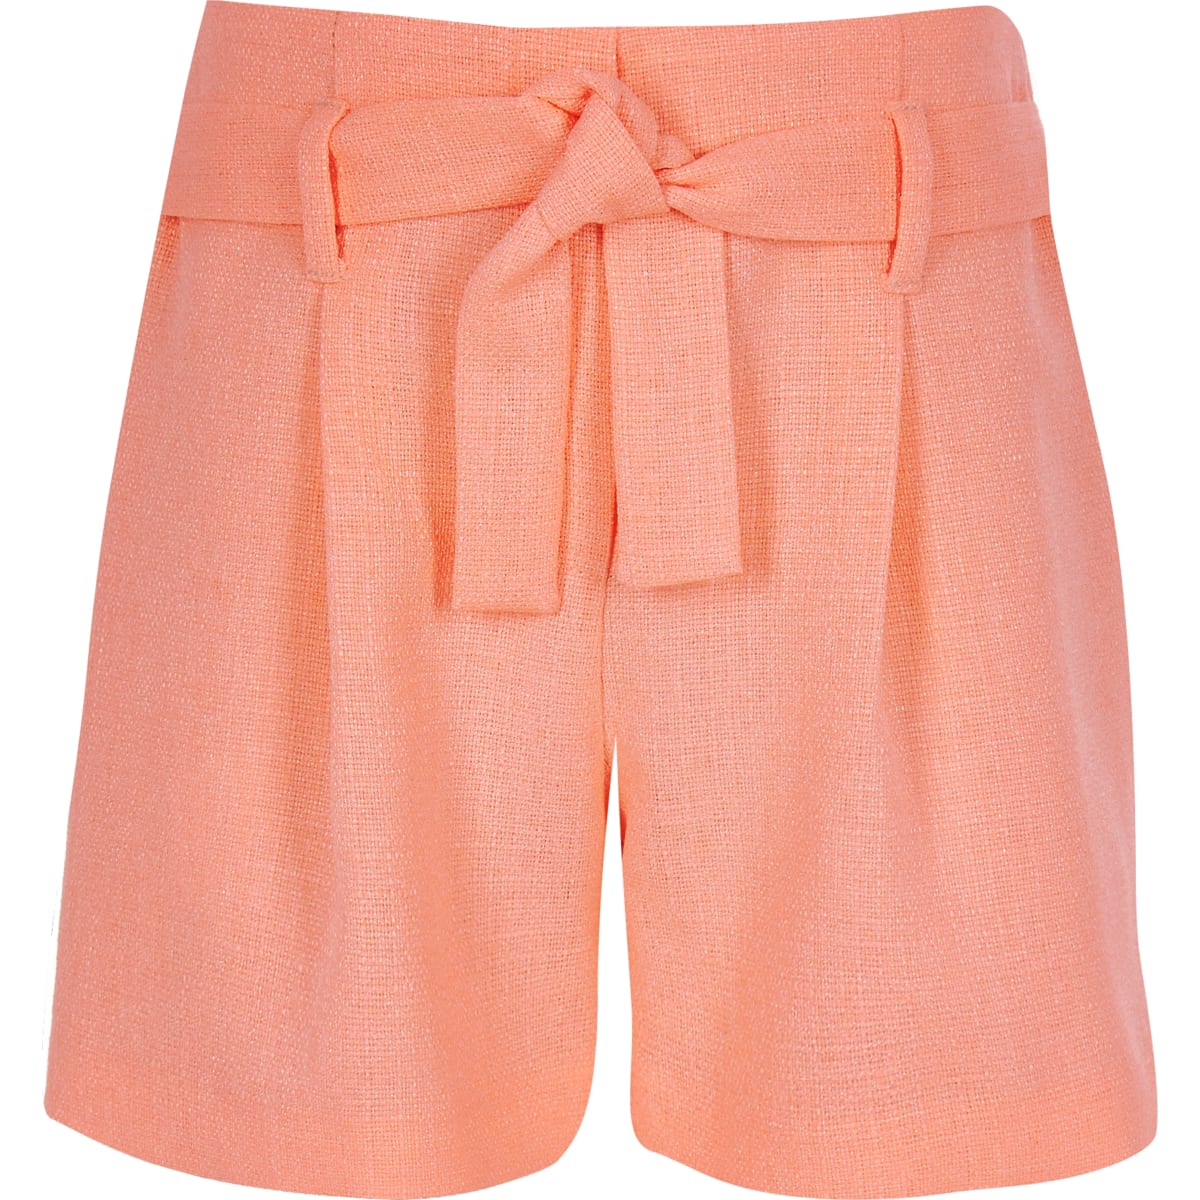 Girls coral belted shorts